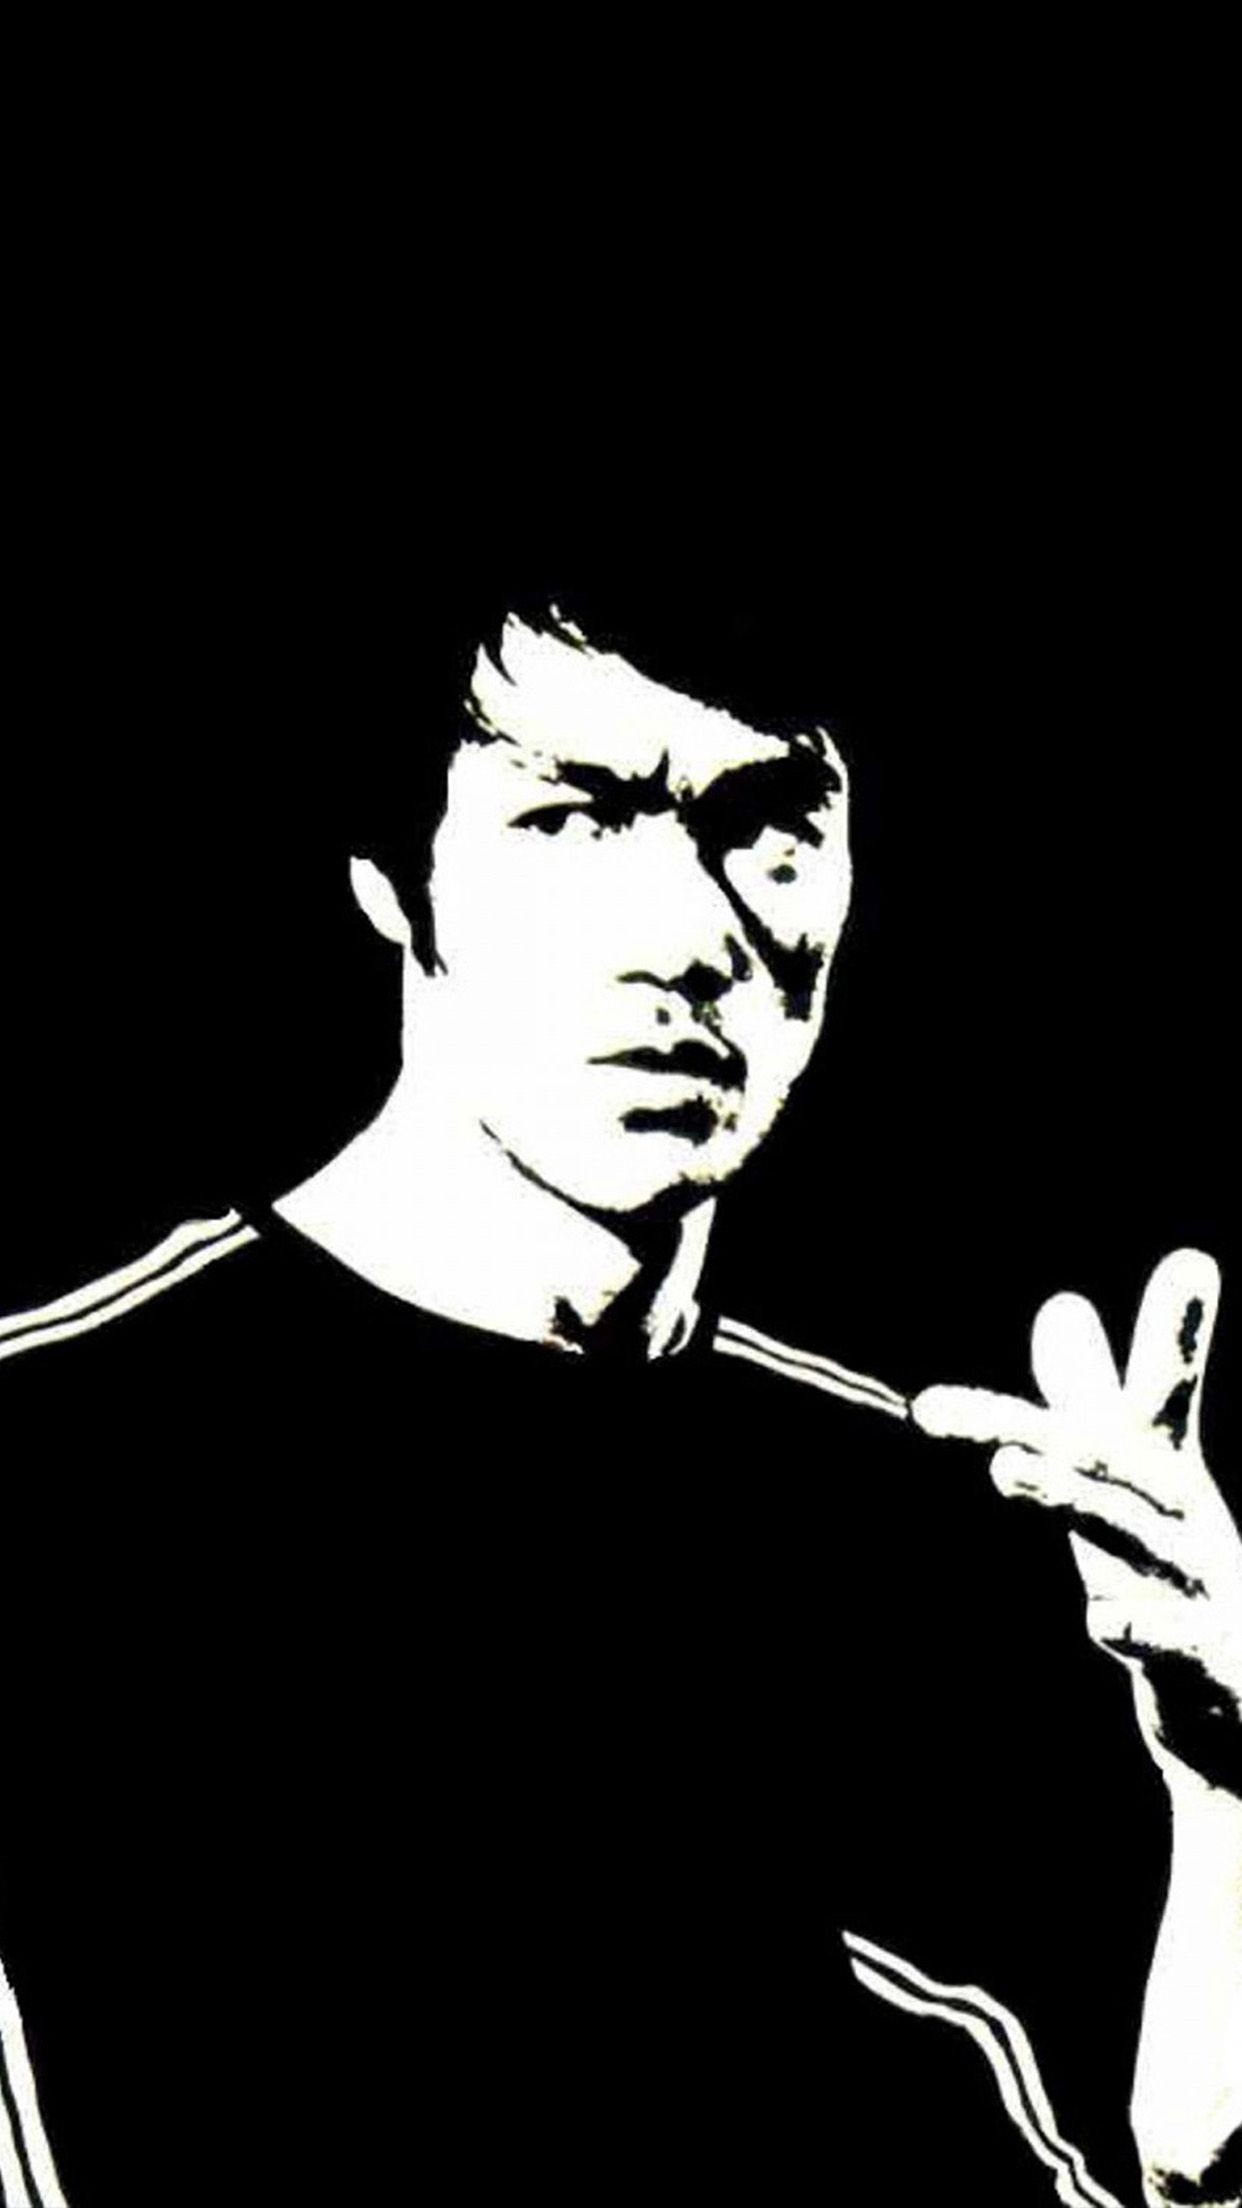 Bruce Lee Iphone Wallpapers Top Free Bruce Lee Iphone